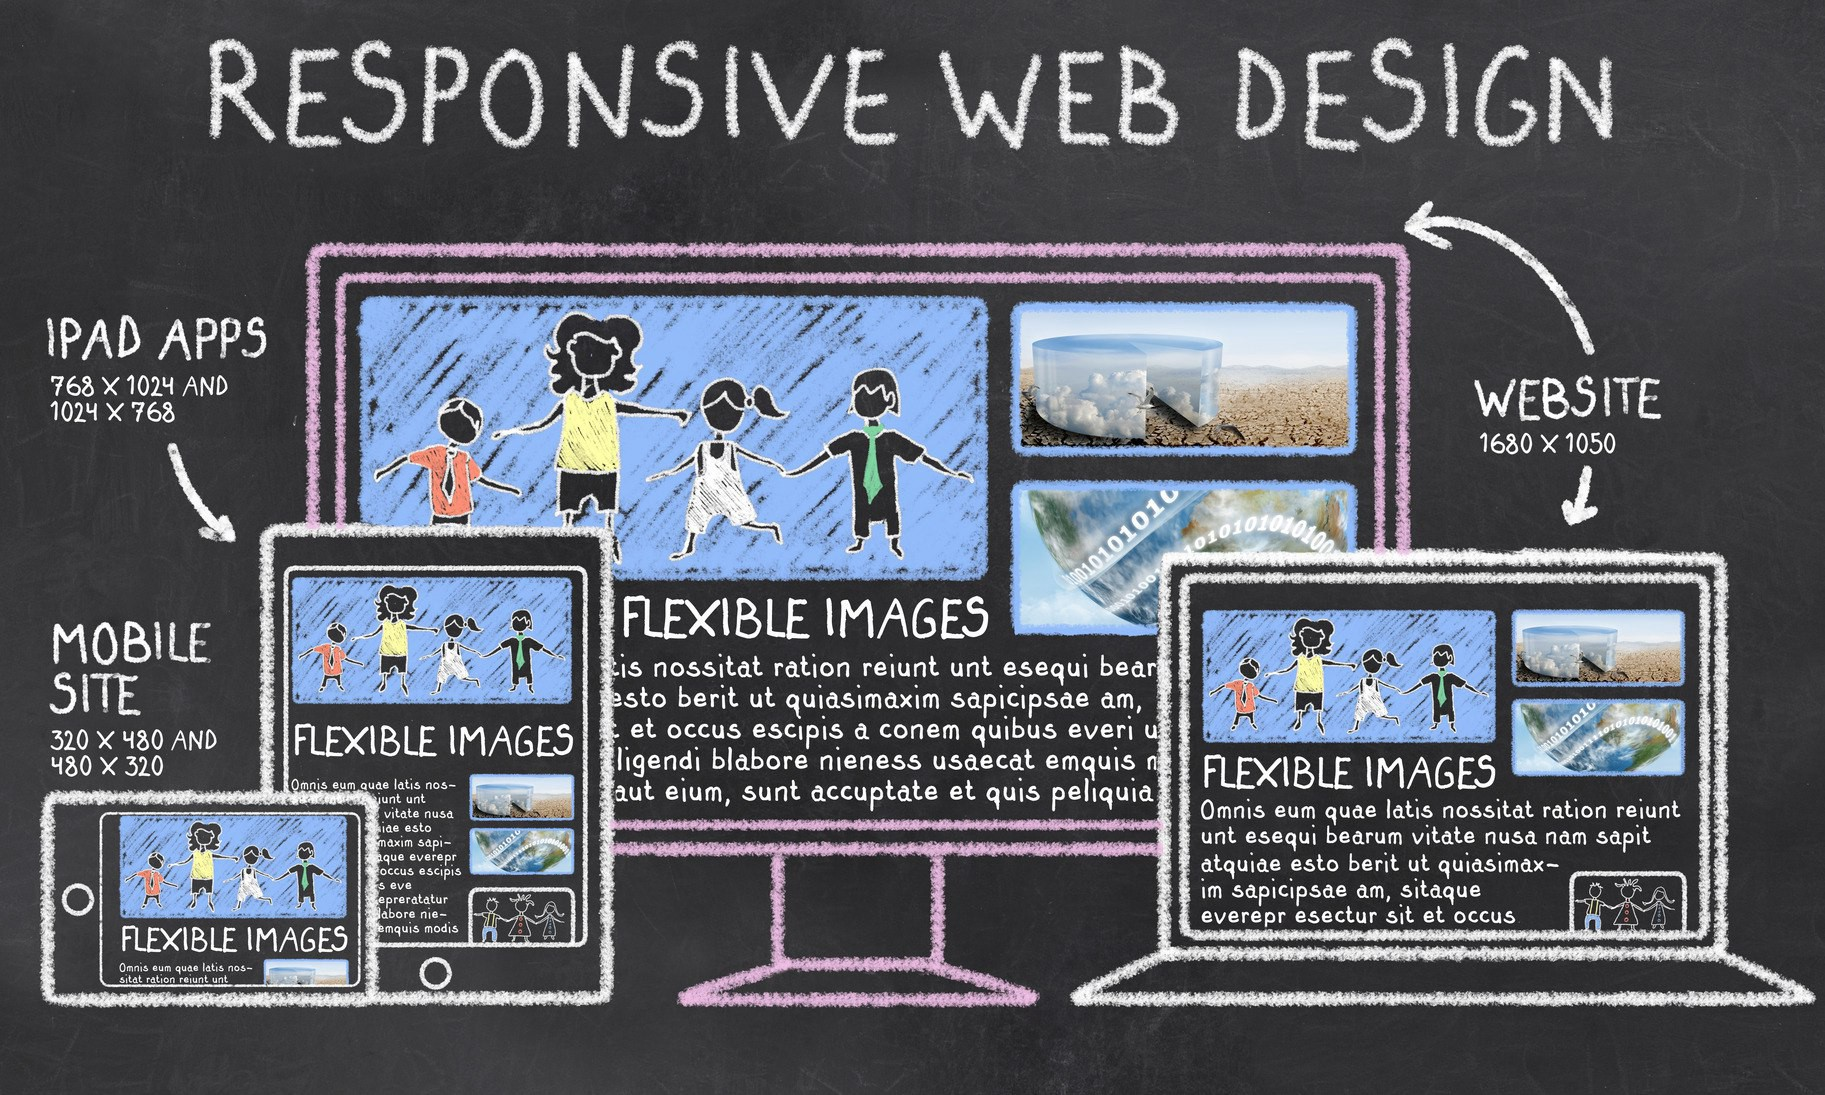 Web Design Tricks For High Converting Websites